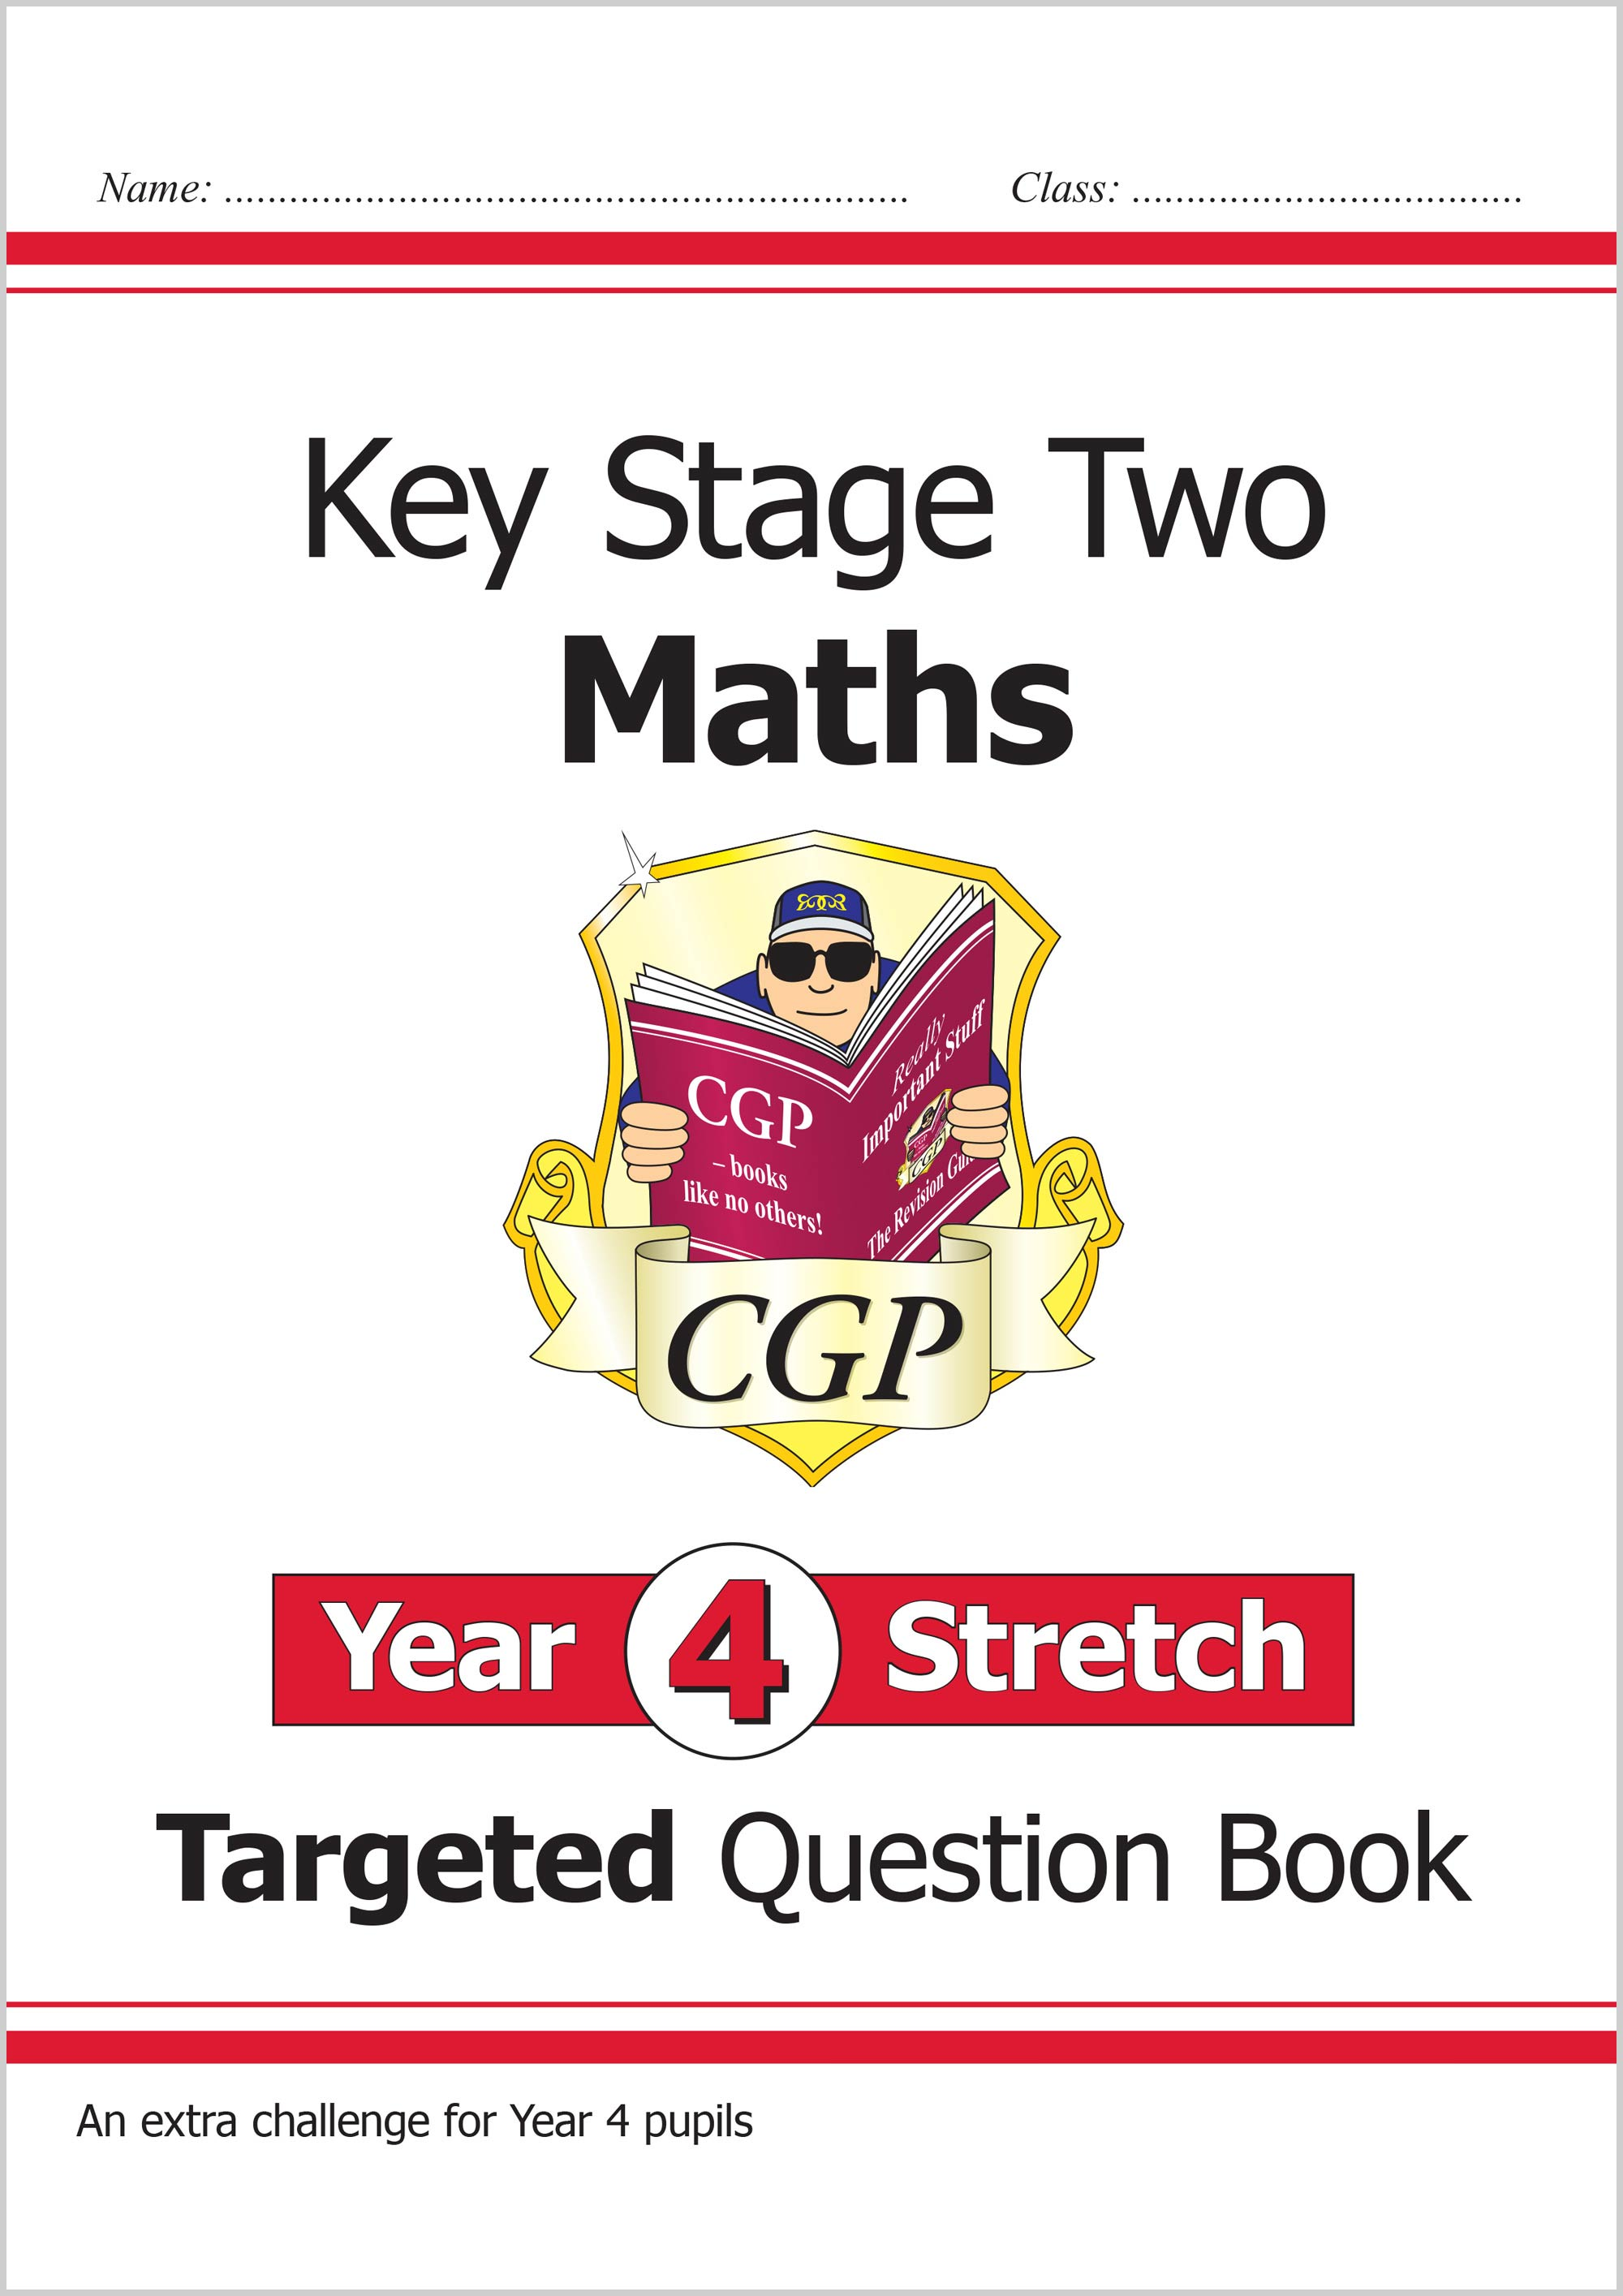 M4HQ21 - New KS2 Maths Targeted Question Book: Challenging Maths - Year 4 Stretch